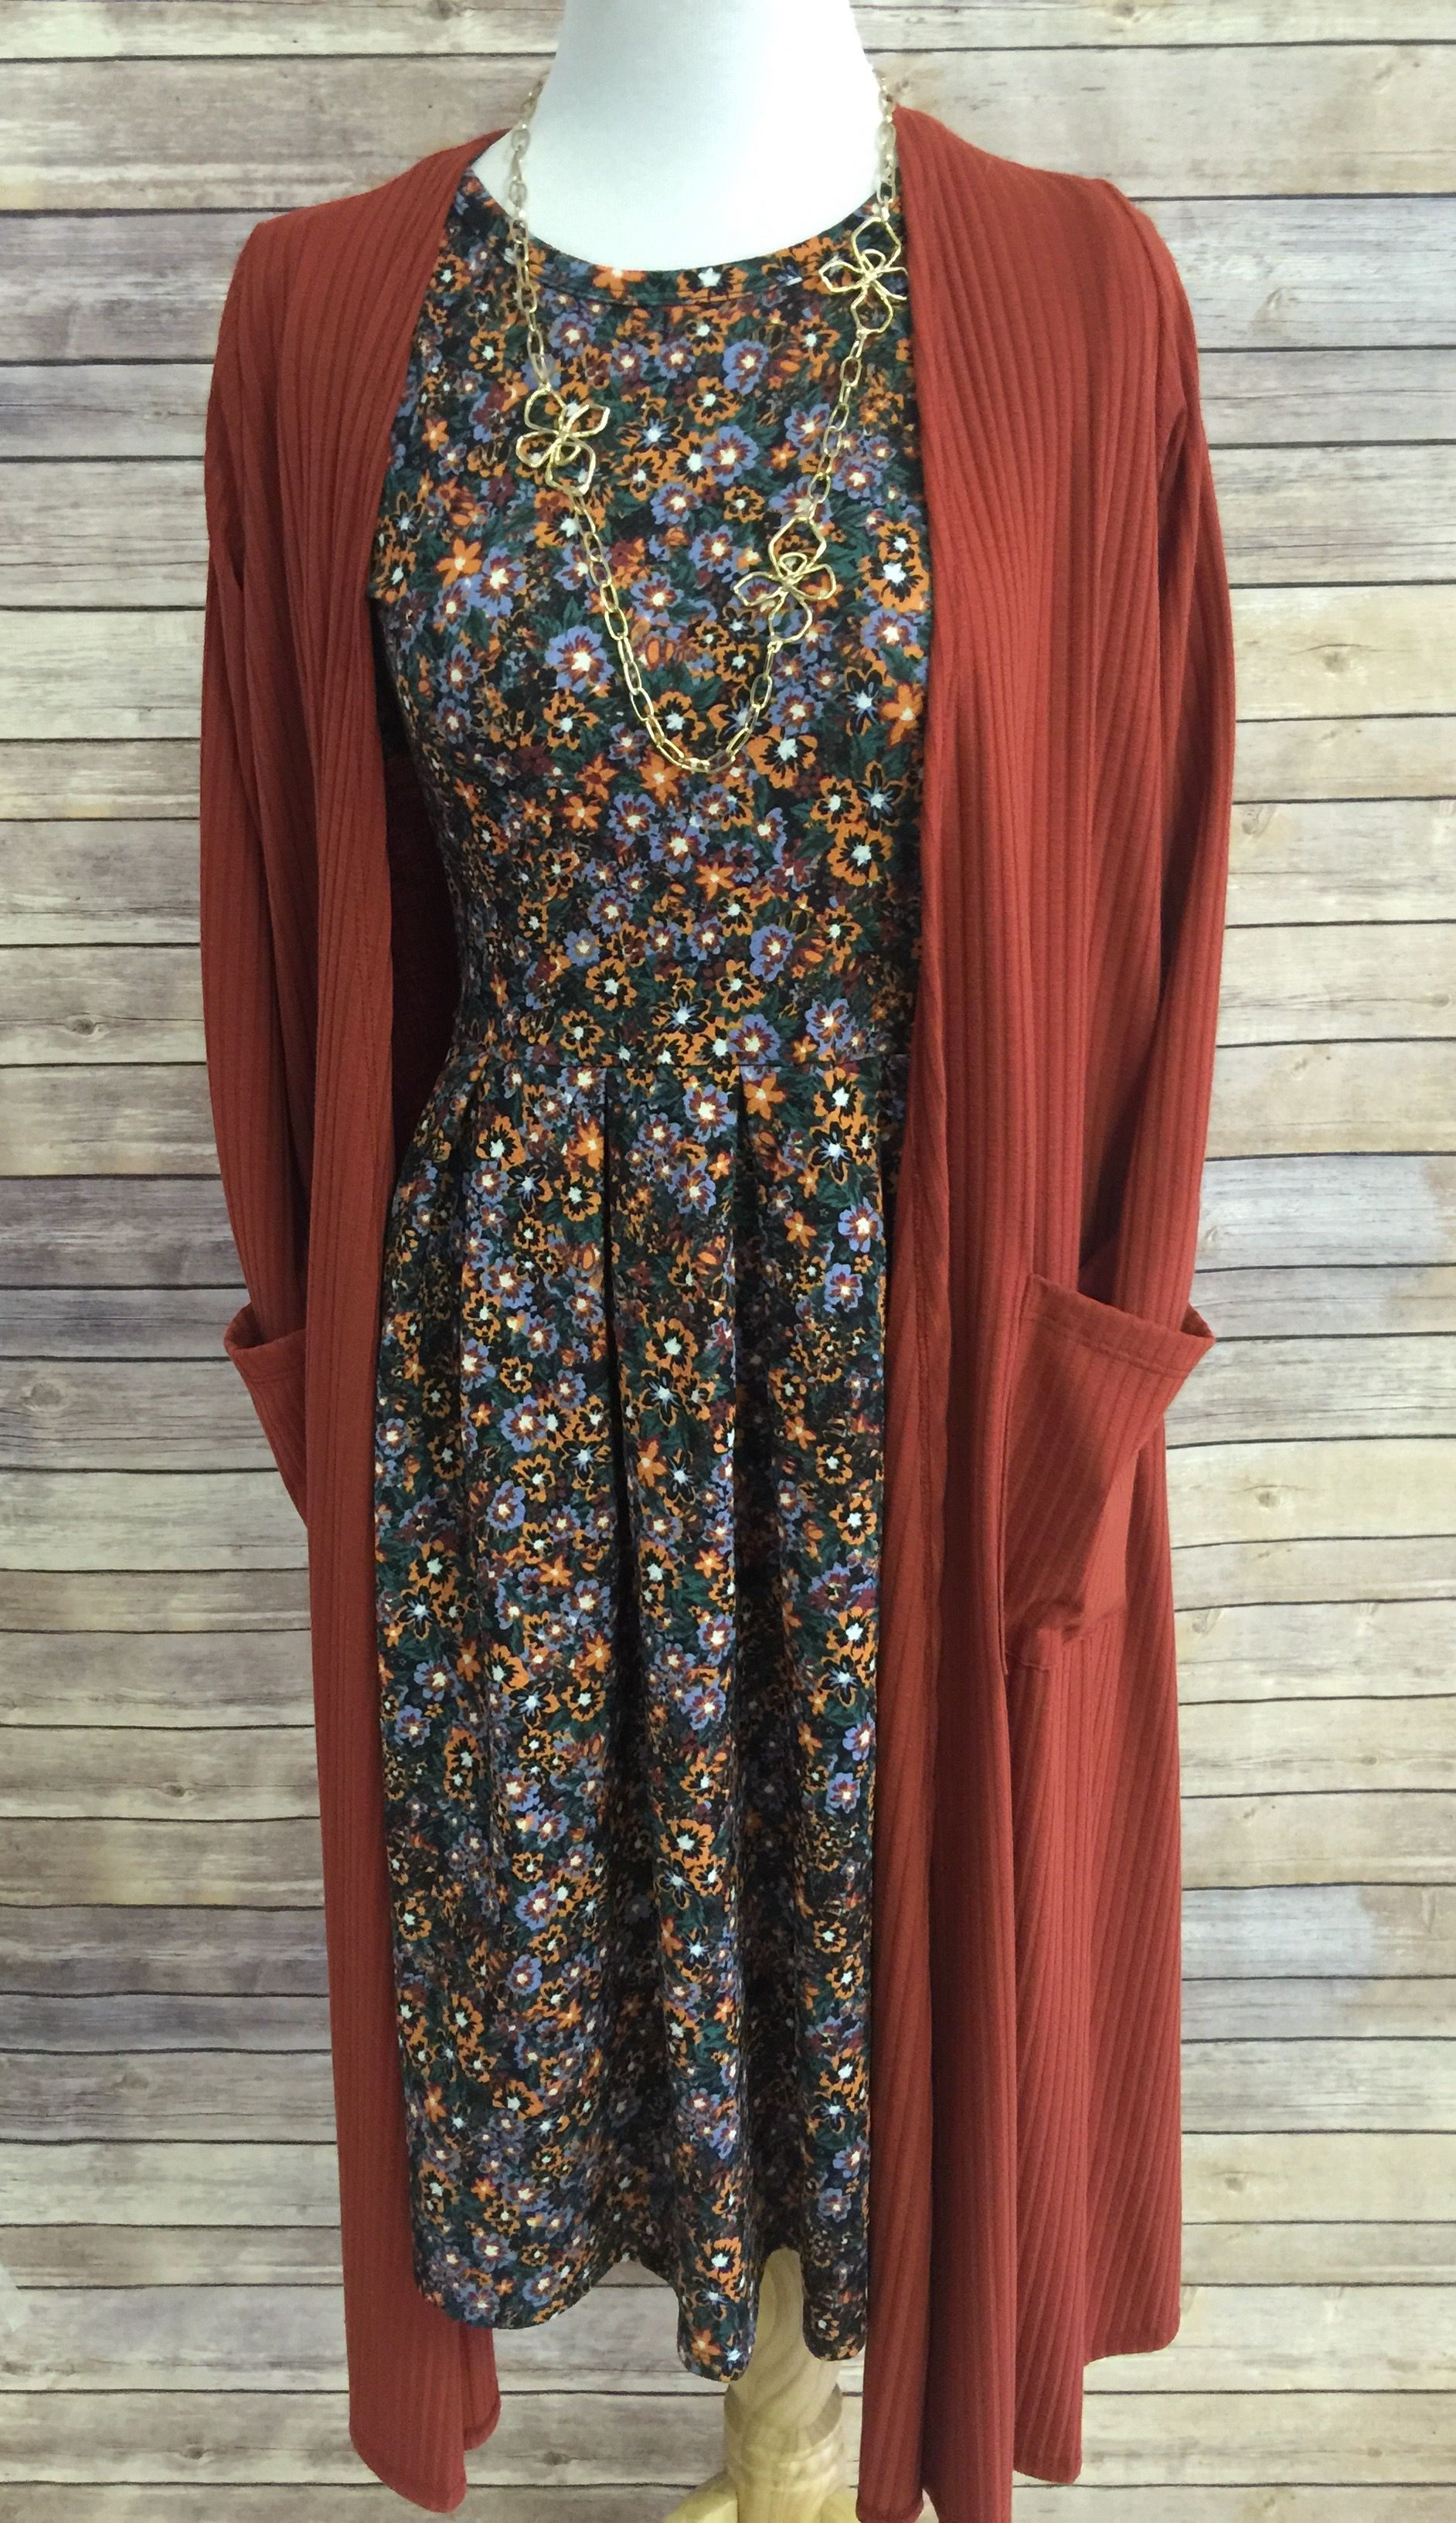 b7064a715b2 Gorgeous LuLaRoe floral Amelia dress and Sarah duster cardigan. For more  outfits like this,